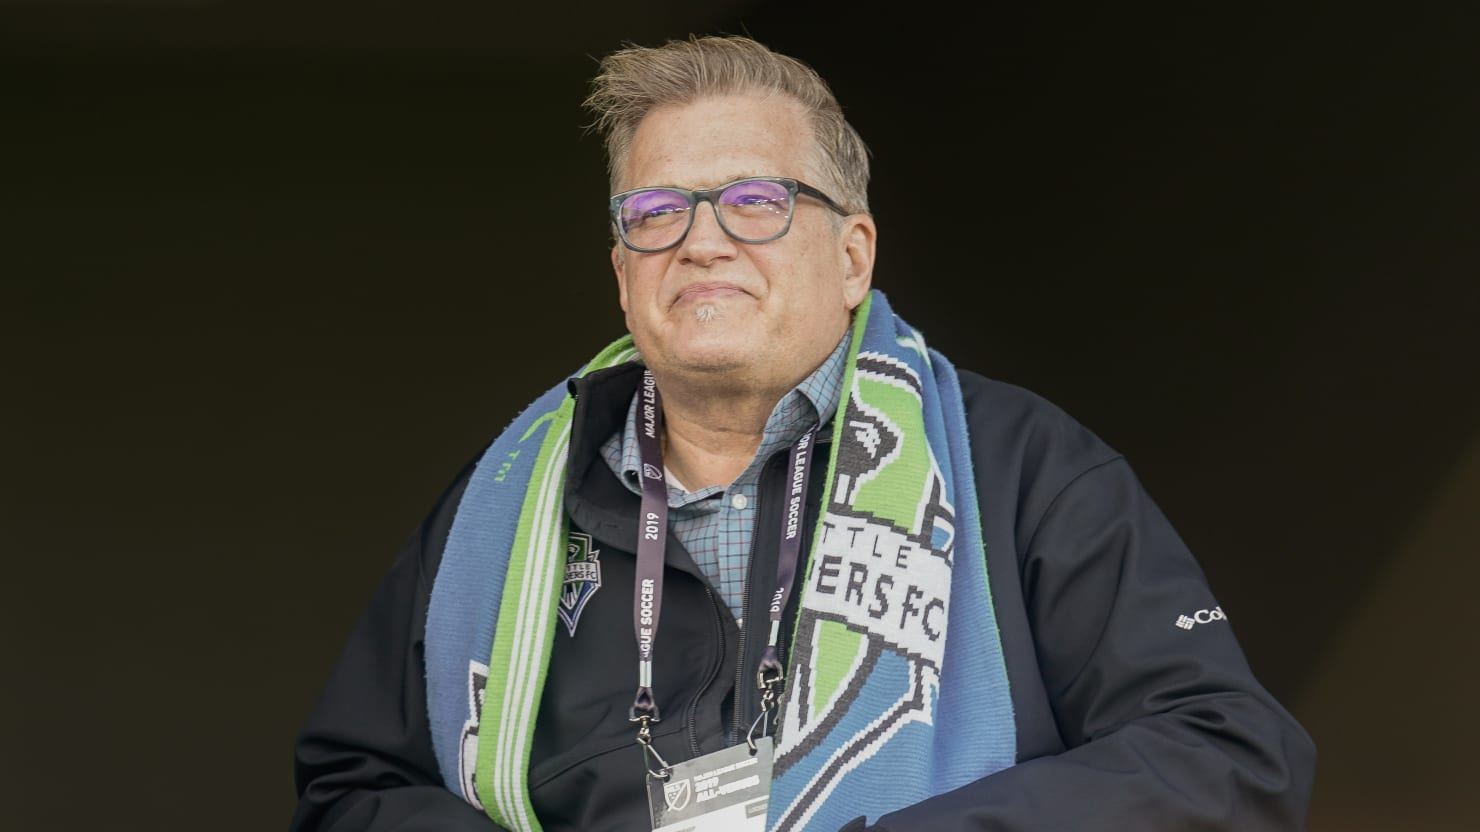 Comedian Drew Carey on Ex-Fiancee Amie Harwick's Death: 'I Am Overcome With Grief'